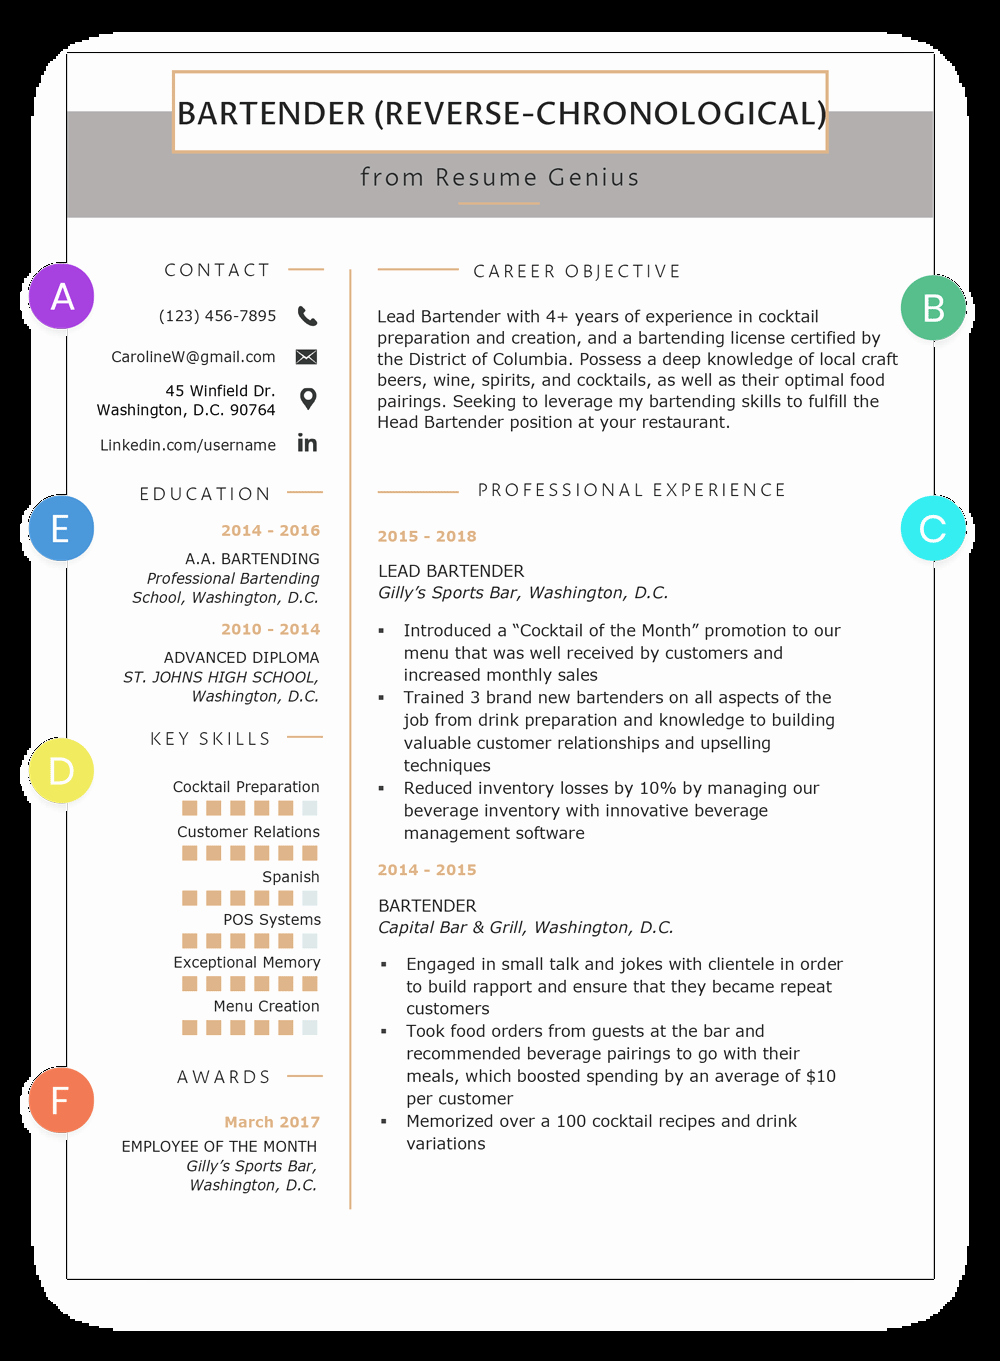 Reverse Chronological Resume Template Best Of Chronological Resume Samples & Writing Guide